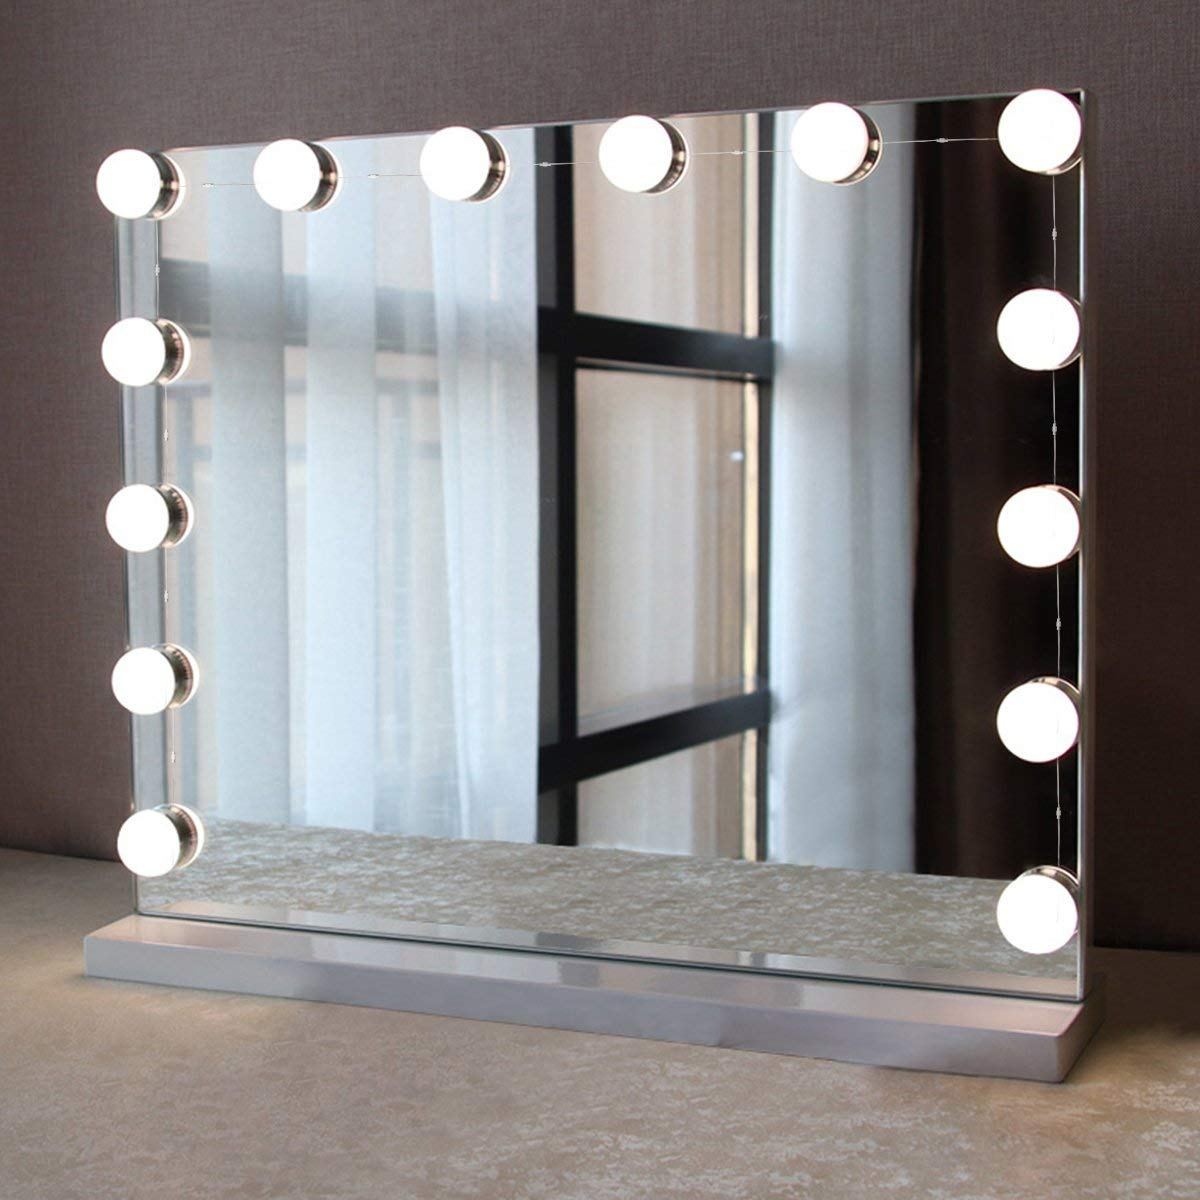 6 Bulb Vanity Light Find Deals On